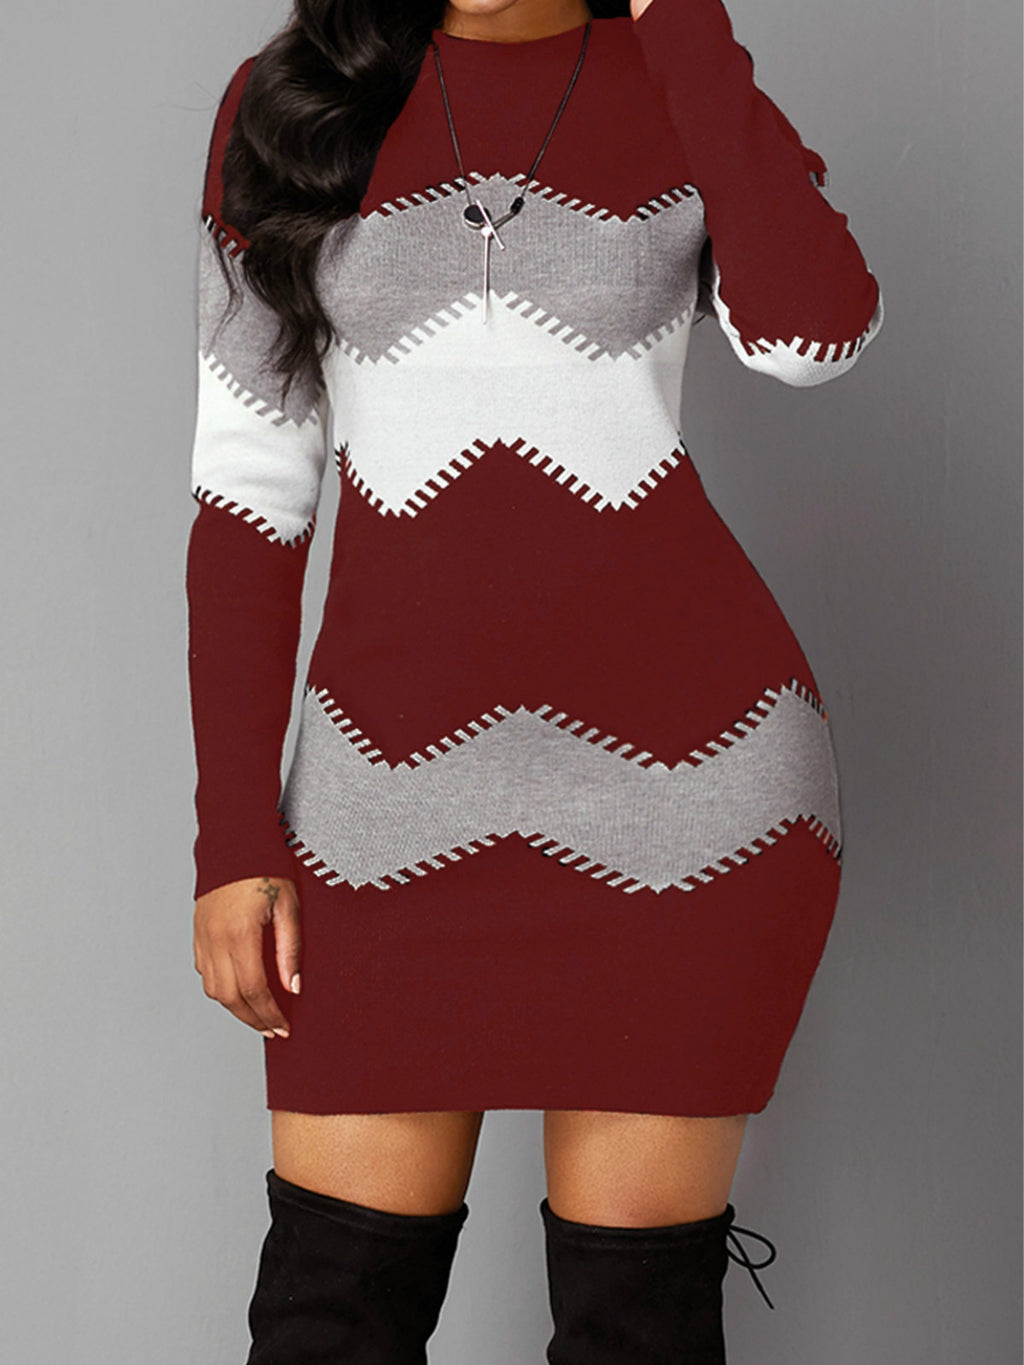 Long Sleeve Chevron Pattern Mock Neck Plus Size Sweater Bodycon Dress Rikkishop